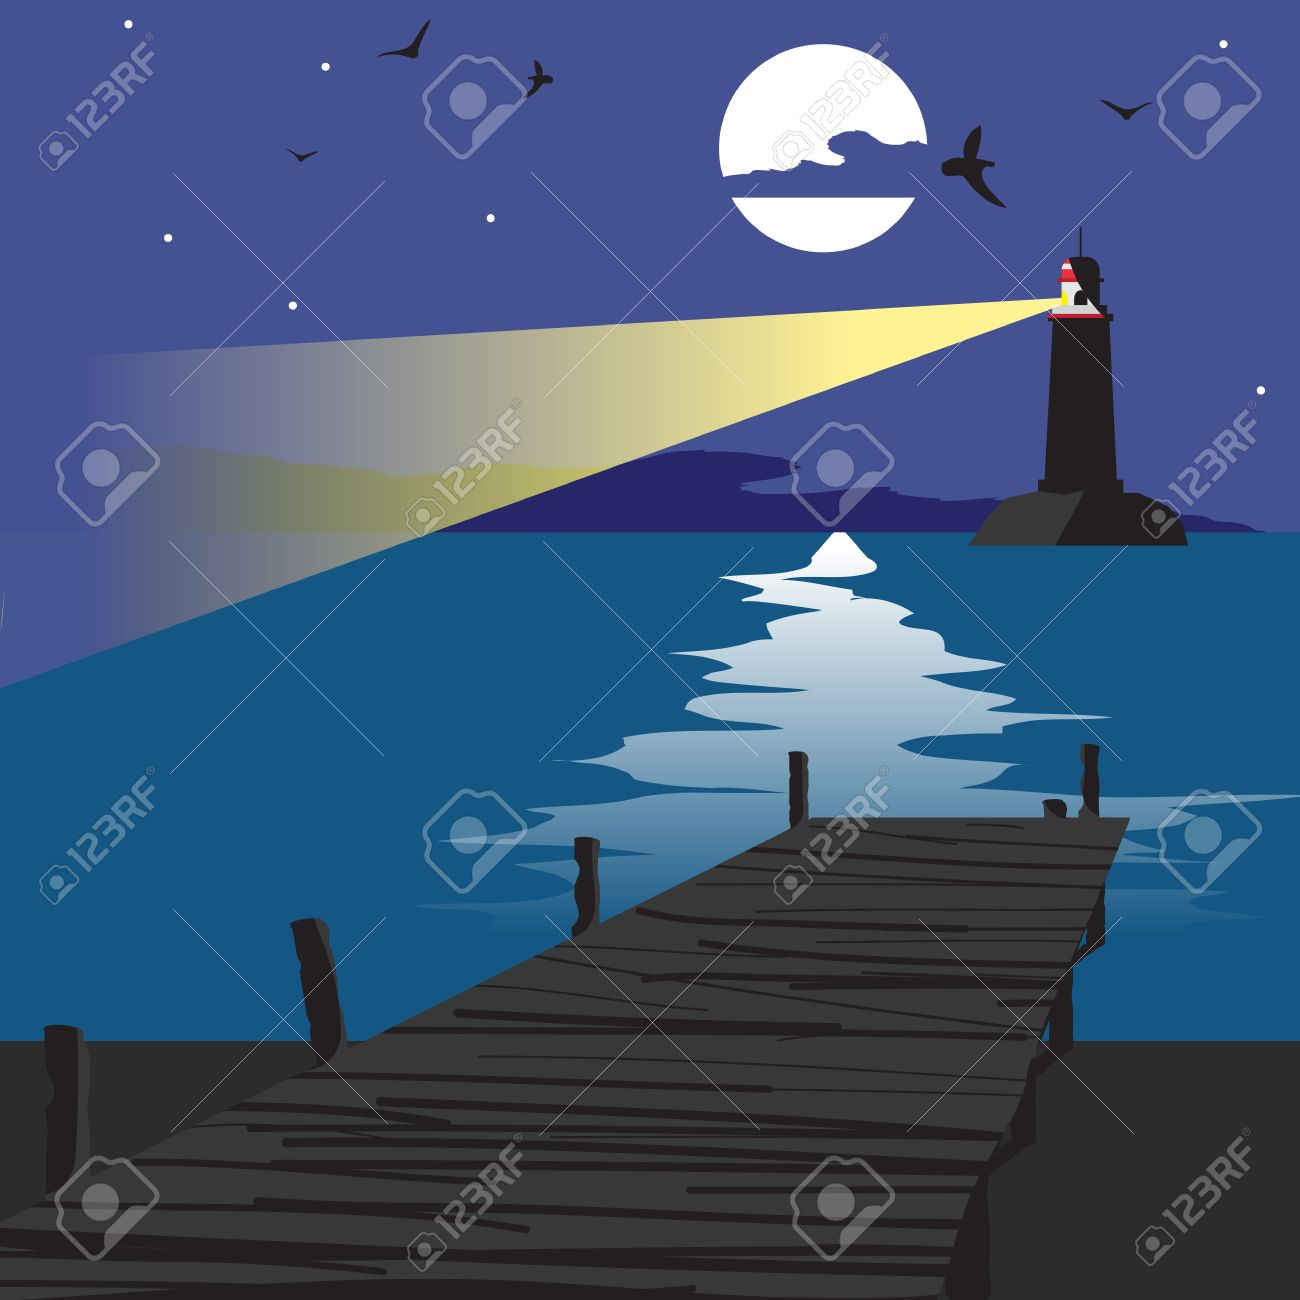 Summer Beach Landscape At Night With A Wooden Pier And Lighthouse Shining In The Distance